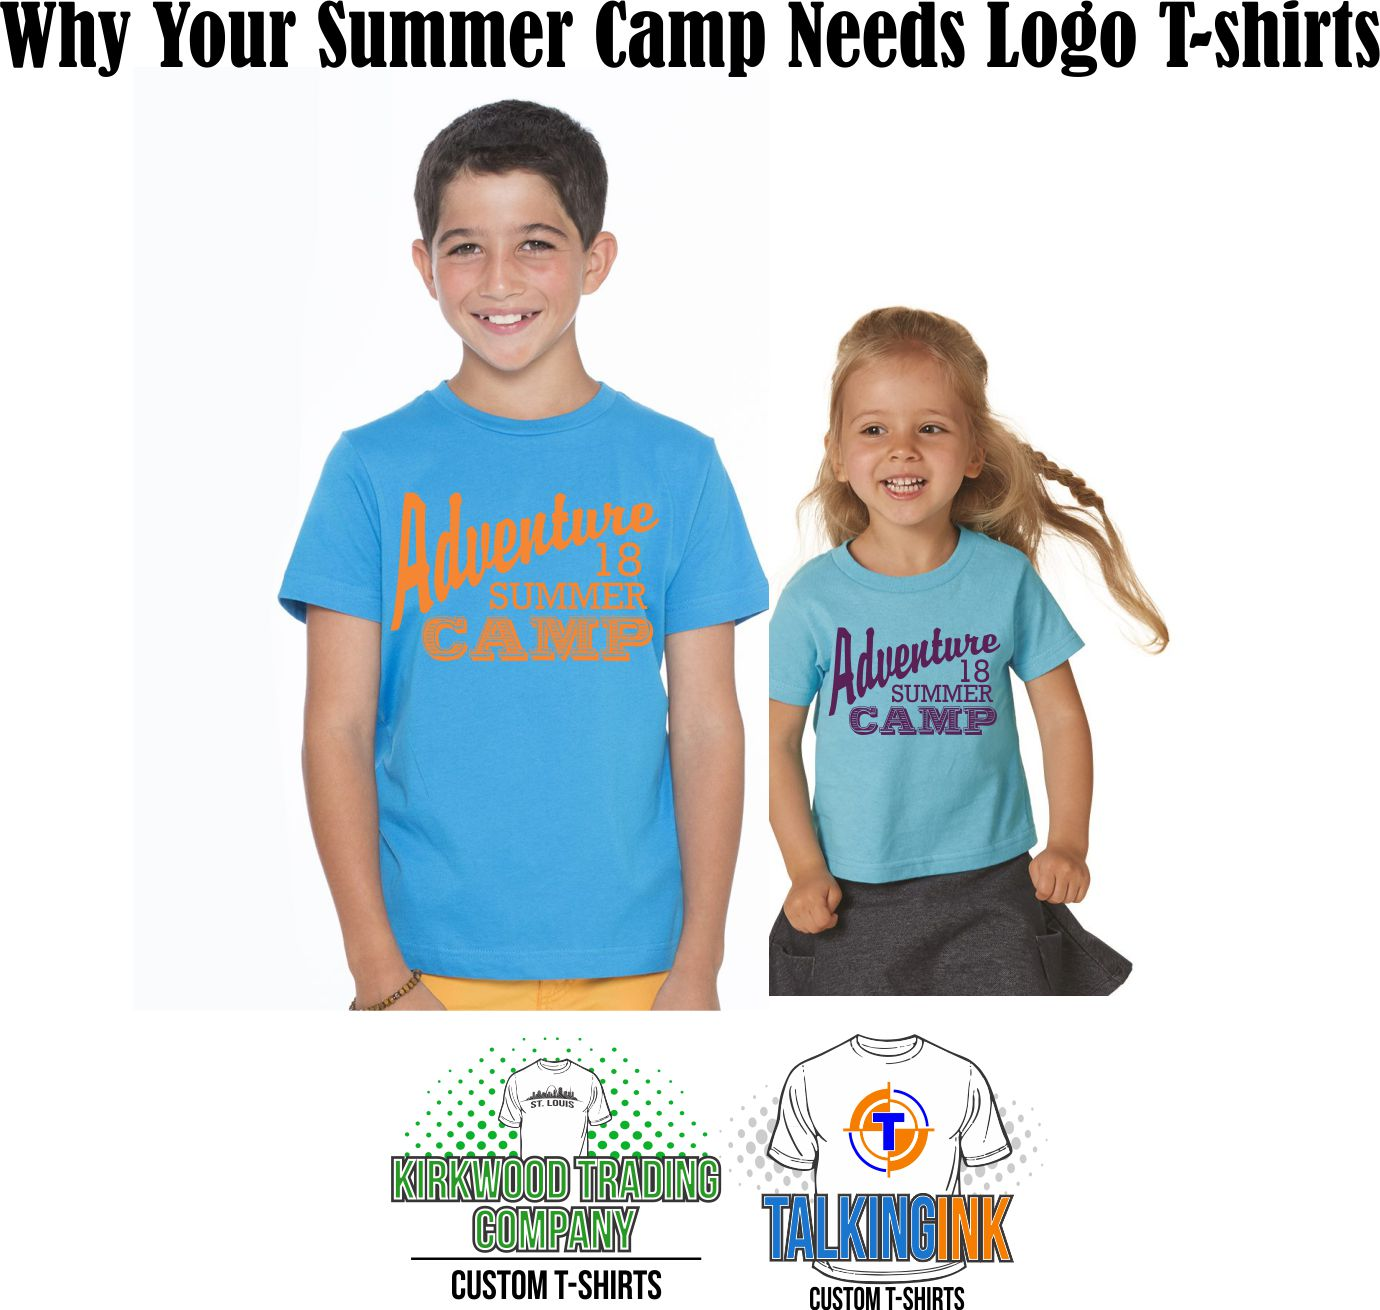 why your summer camp needs logo t-shirts